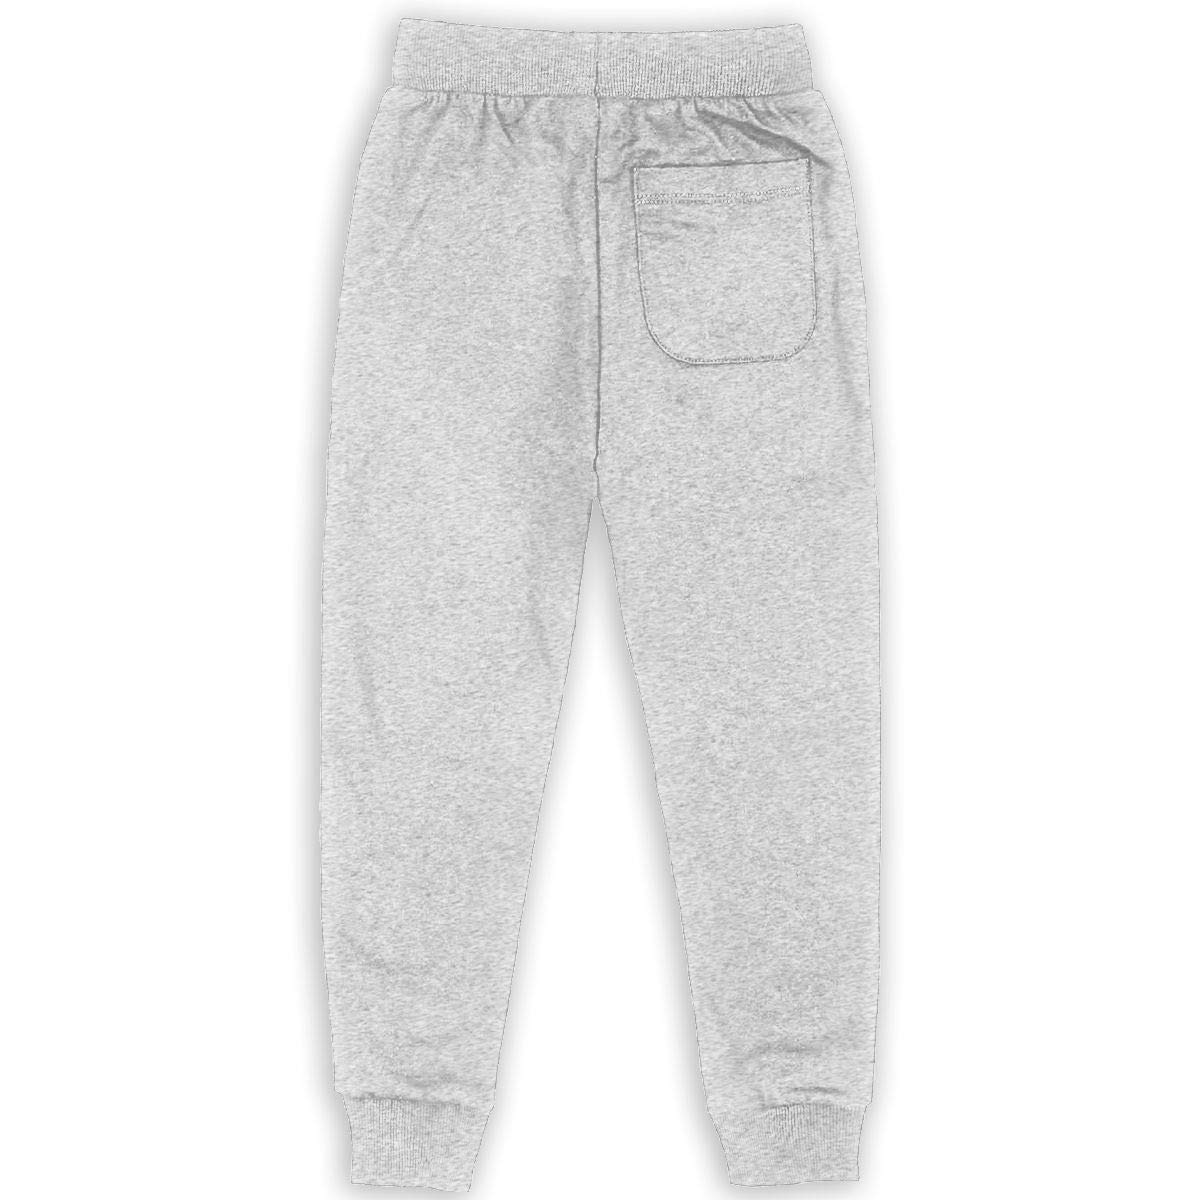 Flying Pig Teenagers Cotton Sweatpants Comfortable Joggers Pants Active Pants